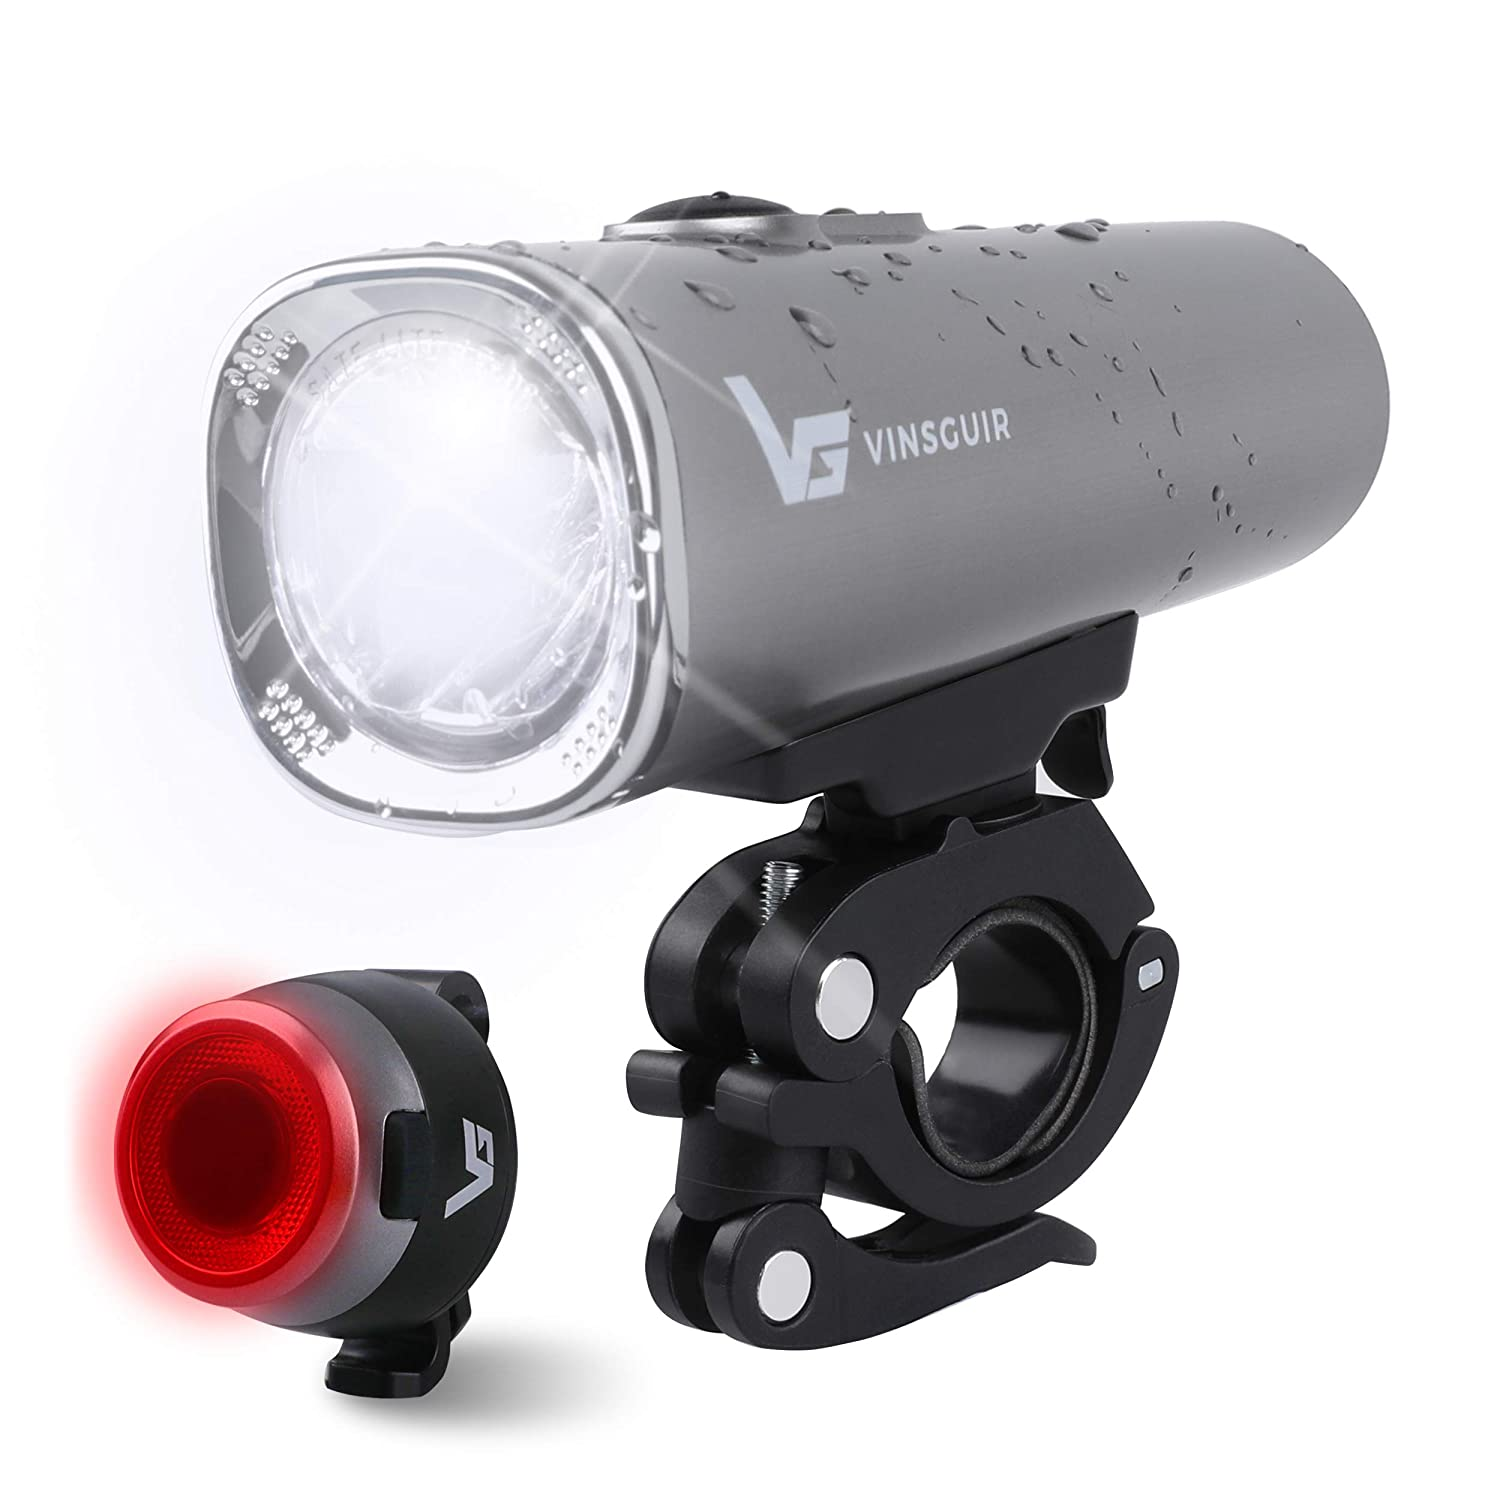 Vinsguir USB Rechargeable Bicycle Light Set, 600 Lumen Brightness, Can Also be Used as a Flashlight, Water Resistant, 5 Mode Options Fit All Bicycles Safety Riding